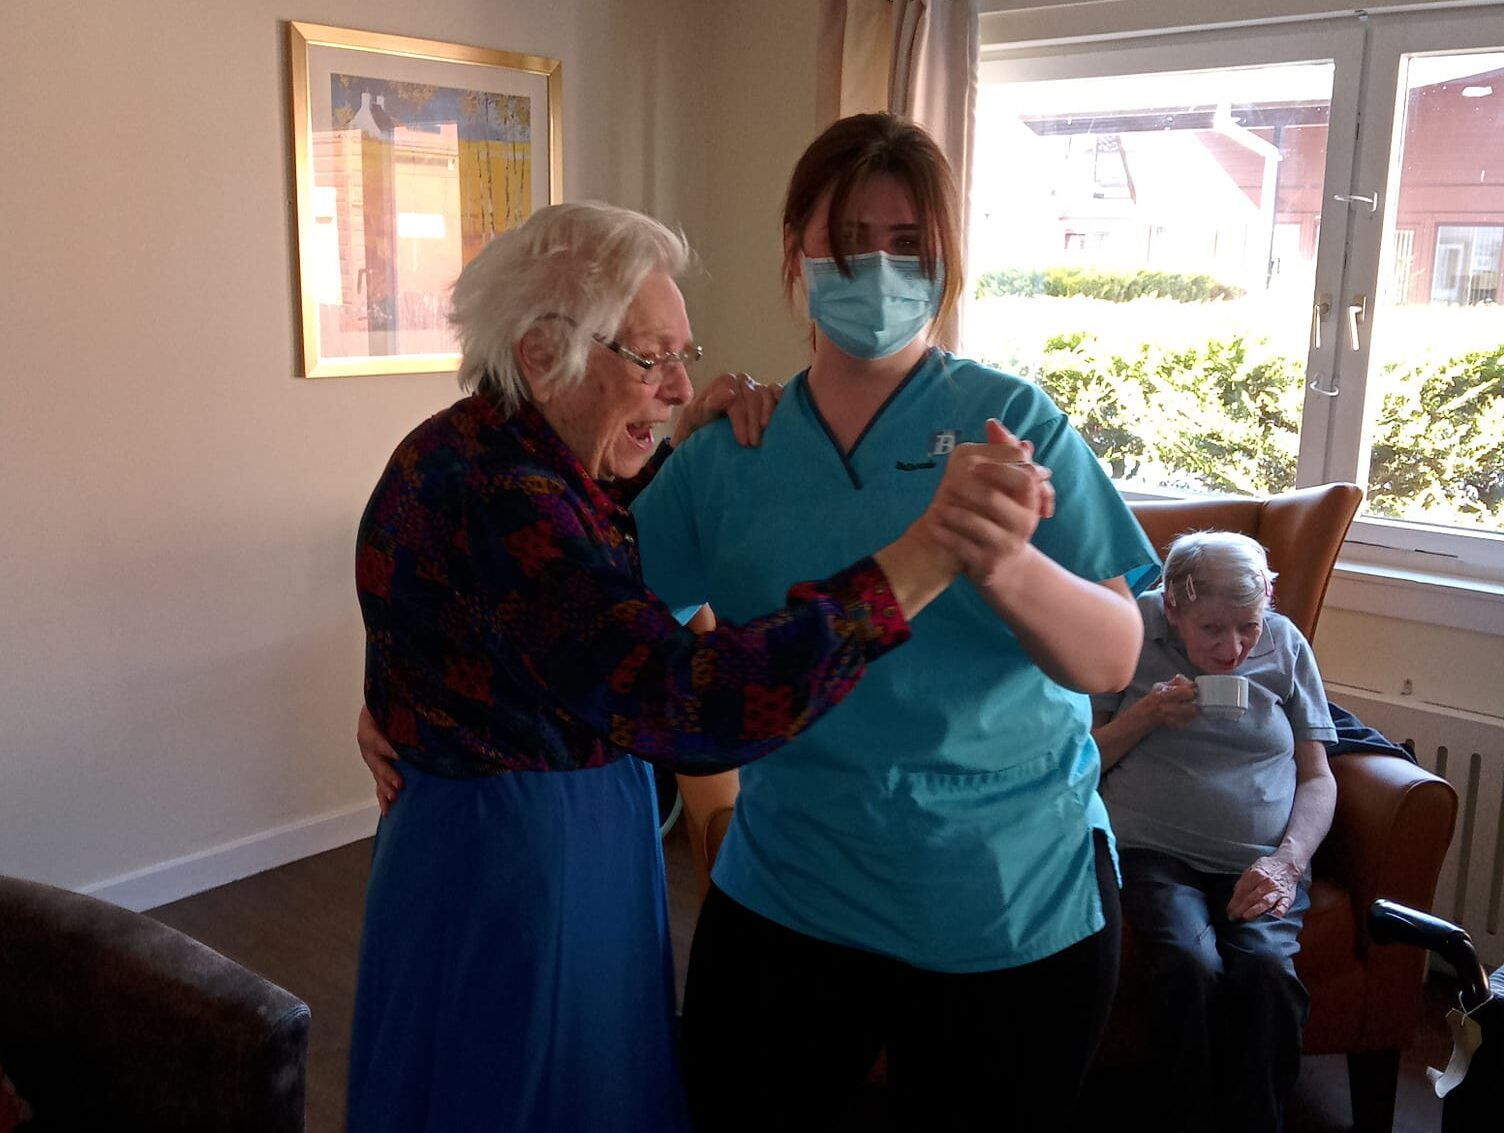 Carer Aimee makes connections with residents through dancing